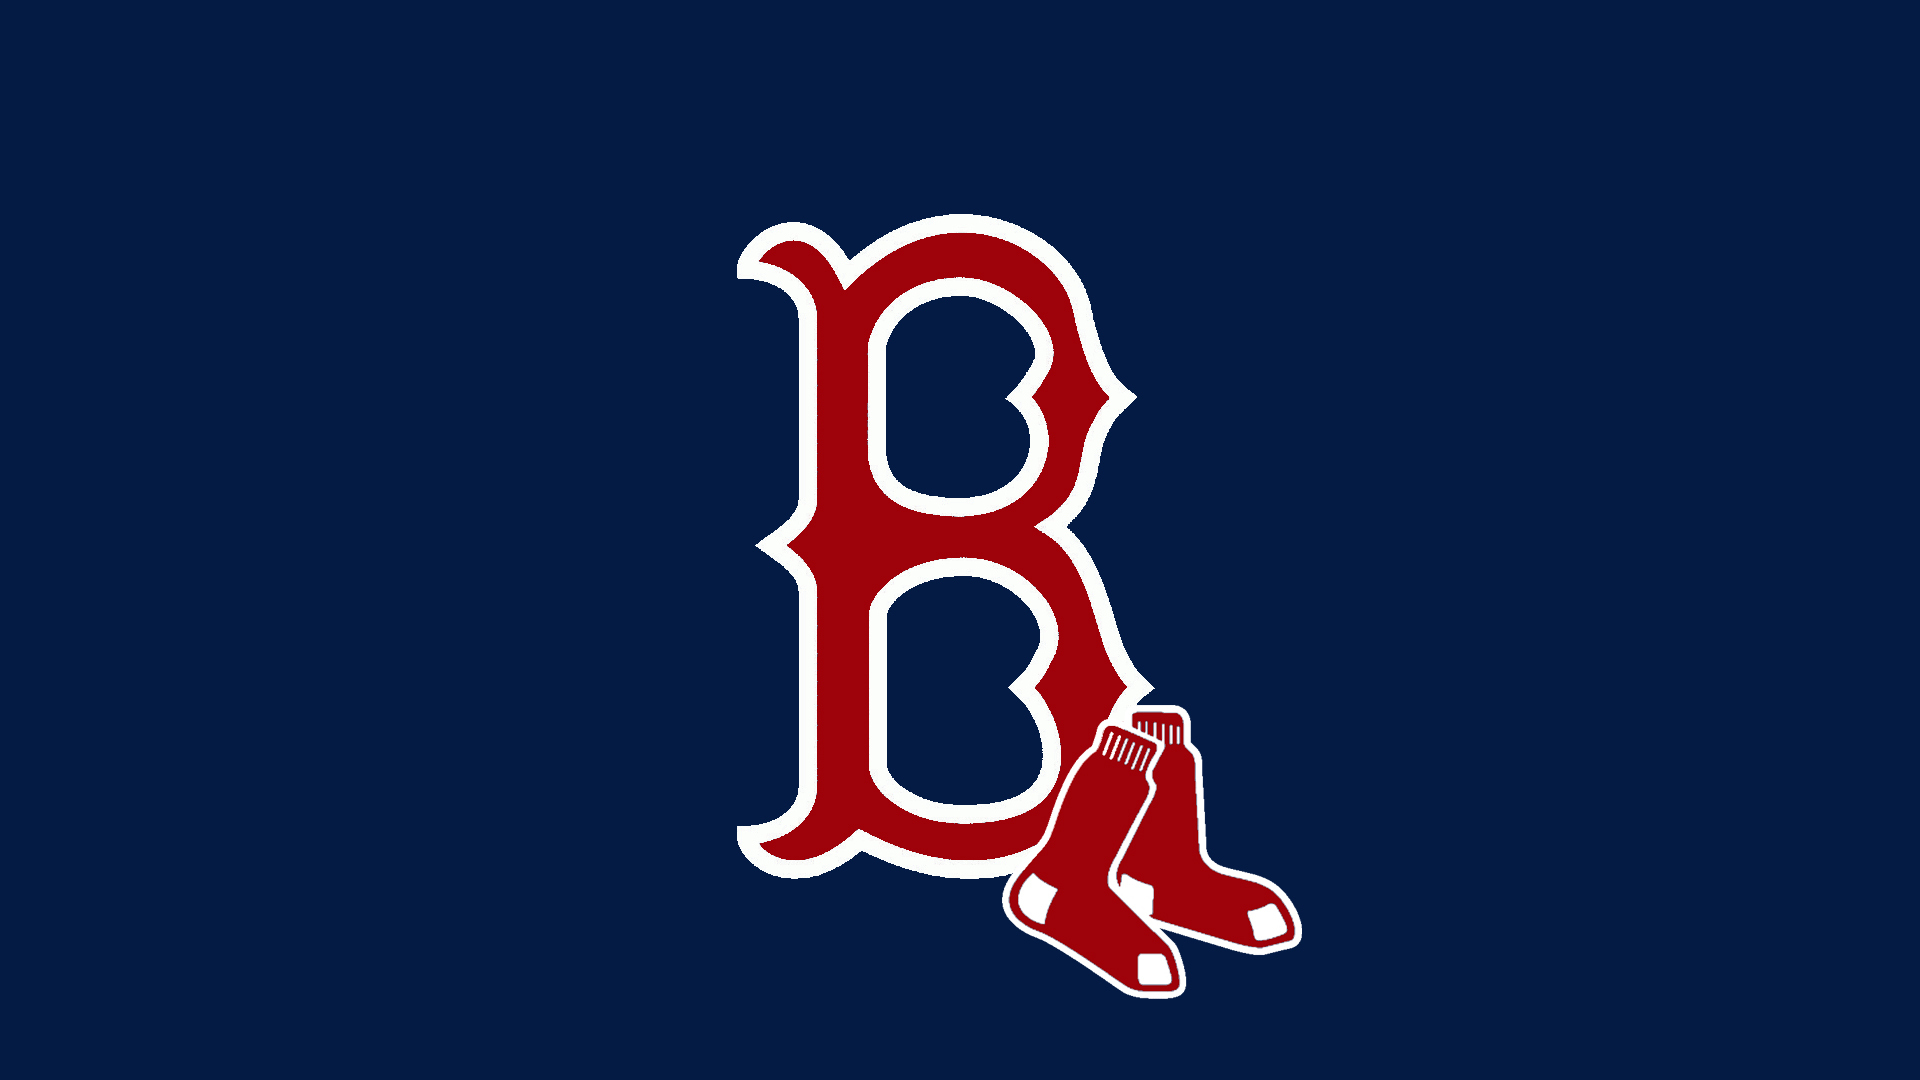 Boston red sox images wallpaper   SF Wallpaper 1920x1080